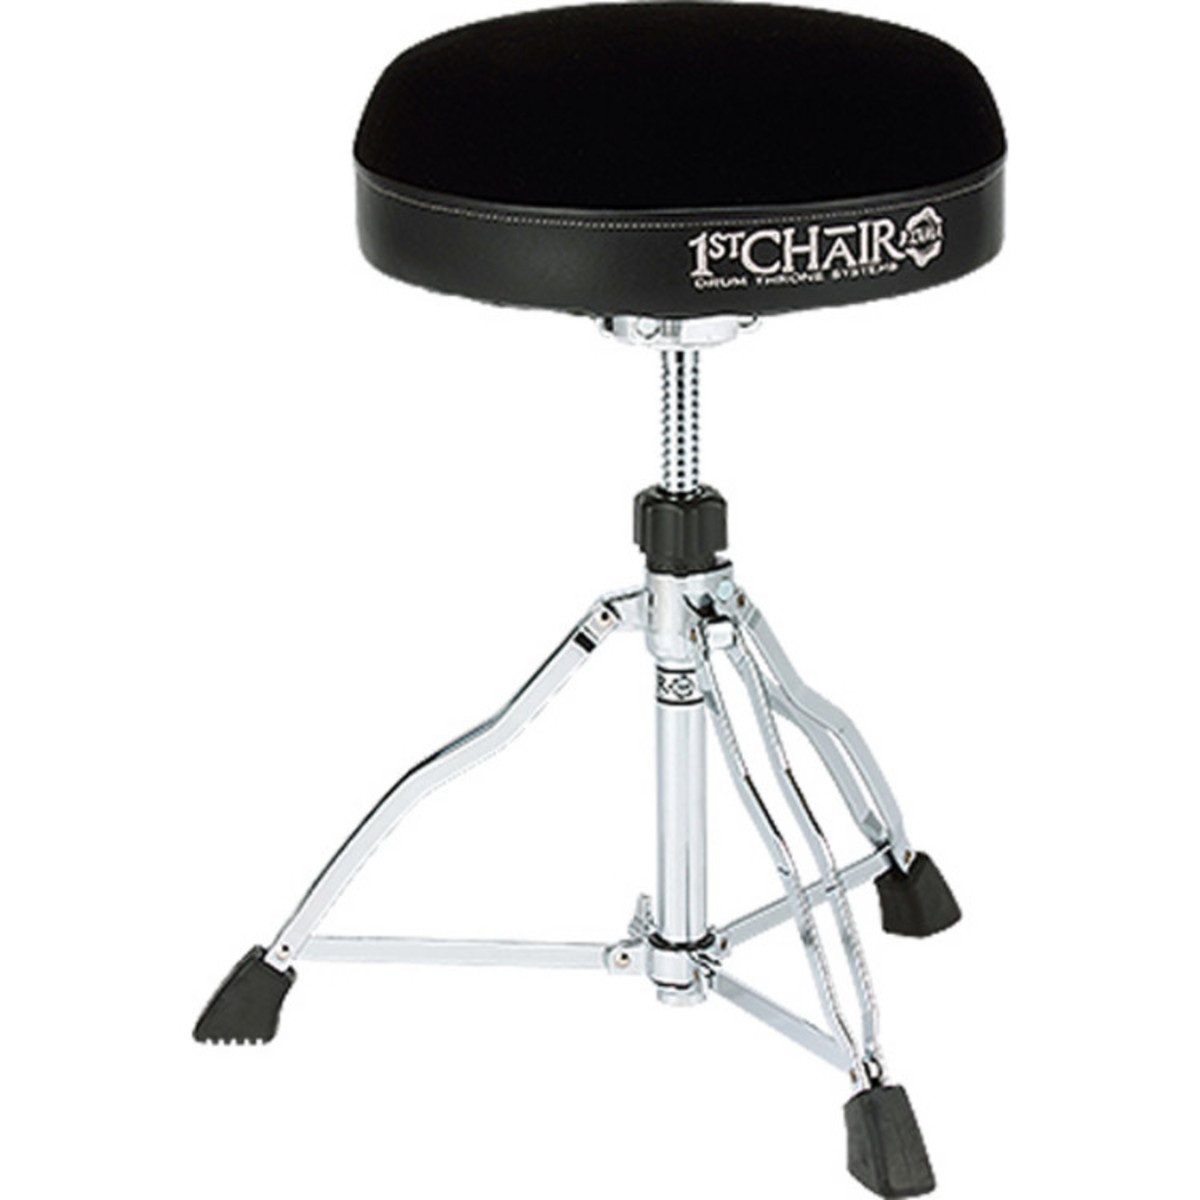 Drum Chair Disc Tama Ht630c First Chair Round Rider Cloth Top Drum